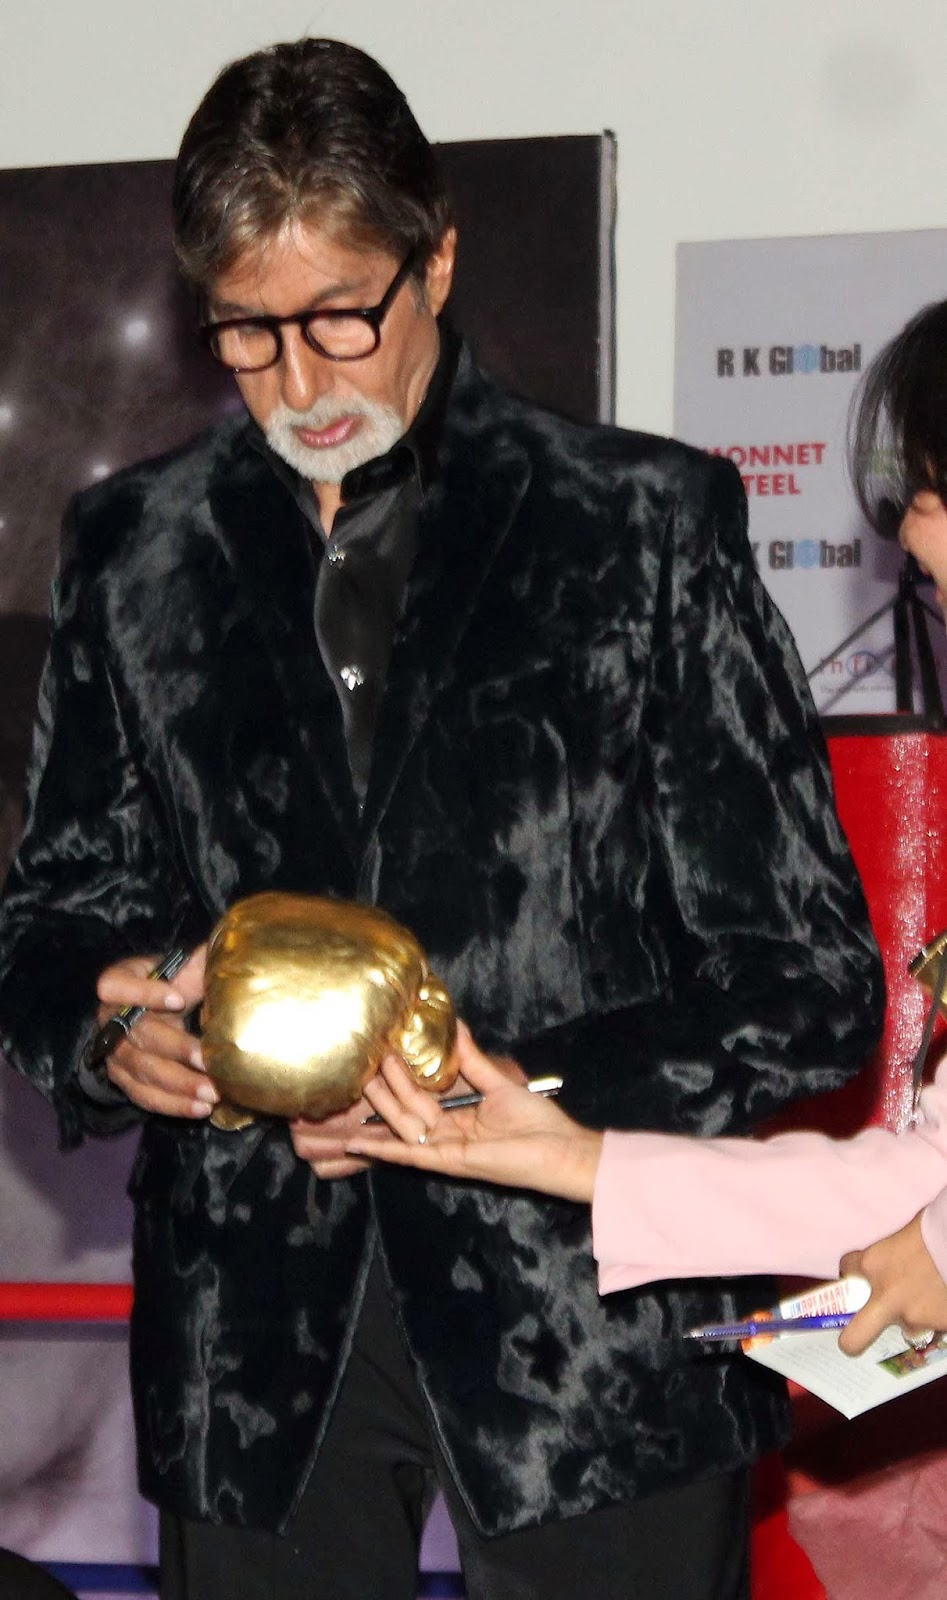 http://3.bp.blogspot.com/-0_LNE_CcbQA/UqdNsHMG_4I/AAAAAAABmi4/AwPfJowNIeo/s1600/Amitabh-Launch-The-Biography-Of-Olympics-Medallist-And-Boxer-Mary-Kom-46.JPG